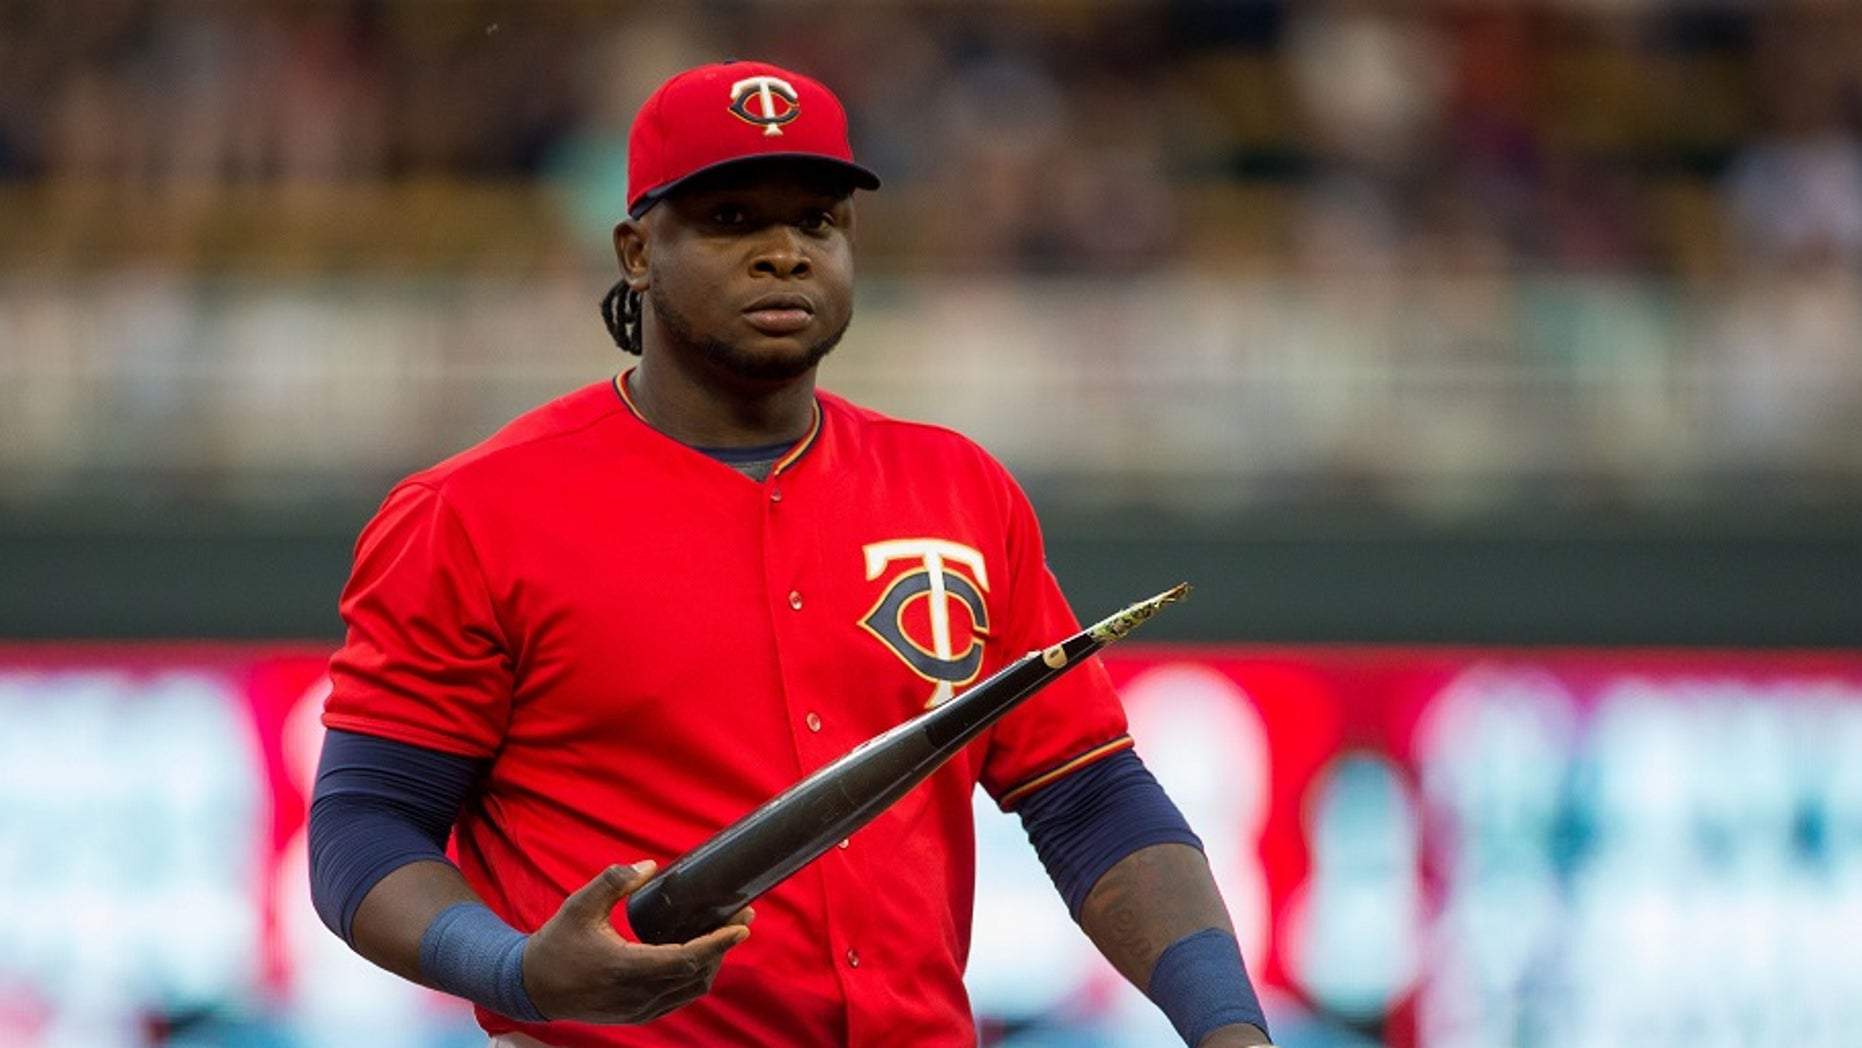 Minnesota Twins' third baseman Miguel Sano was accused of sexual misconduct by a sports photographer.